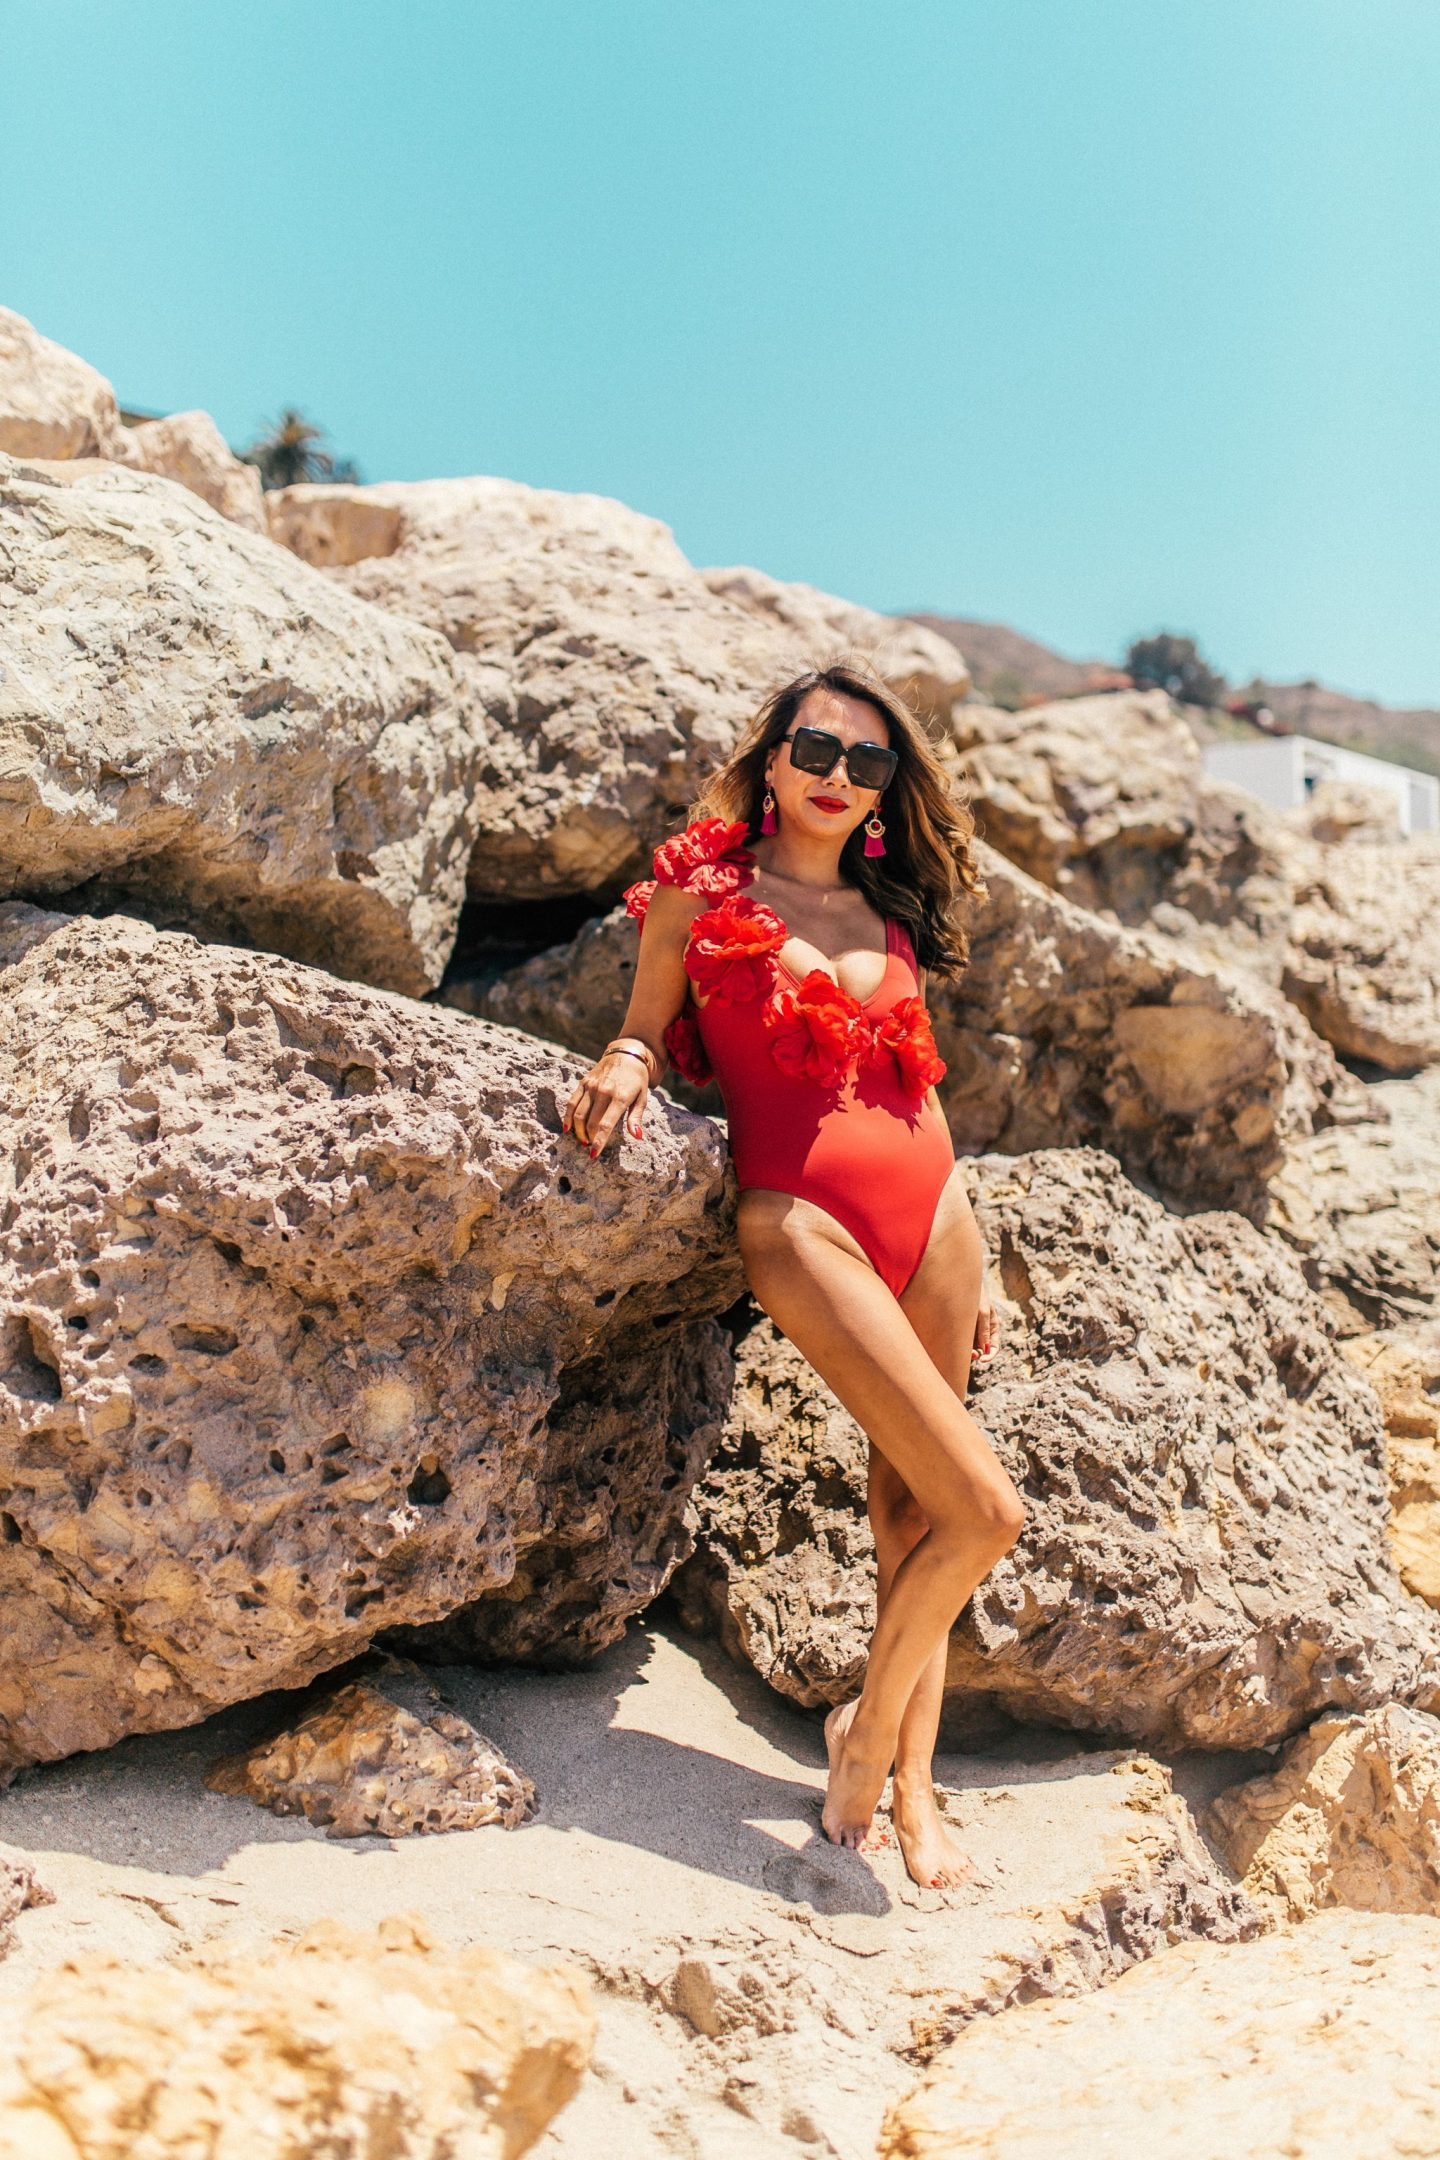 Red Asos Swimsuit, Floral Applique Swimsuit, Best Swimsuits under $50, Jennifer Worman,